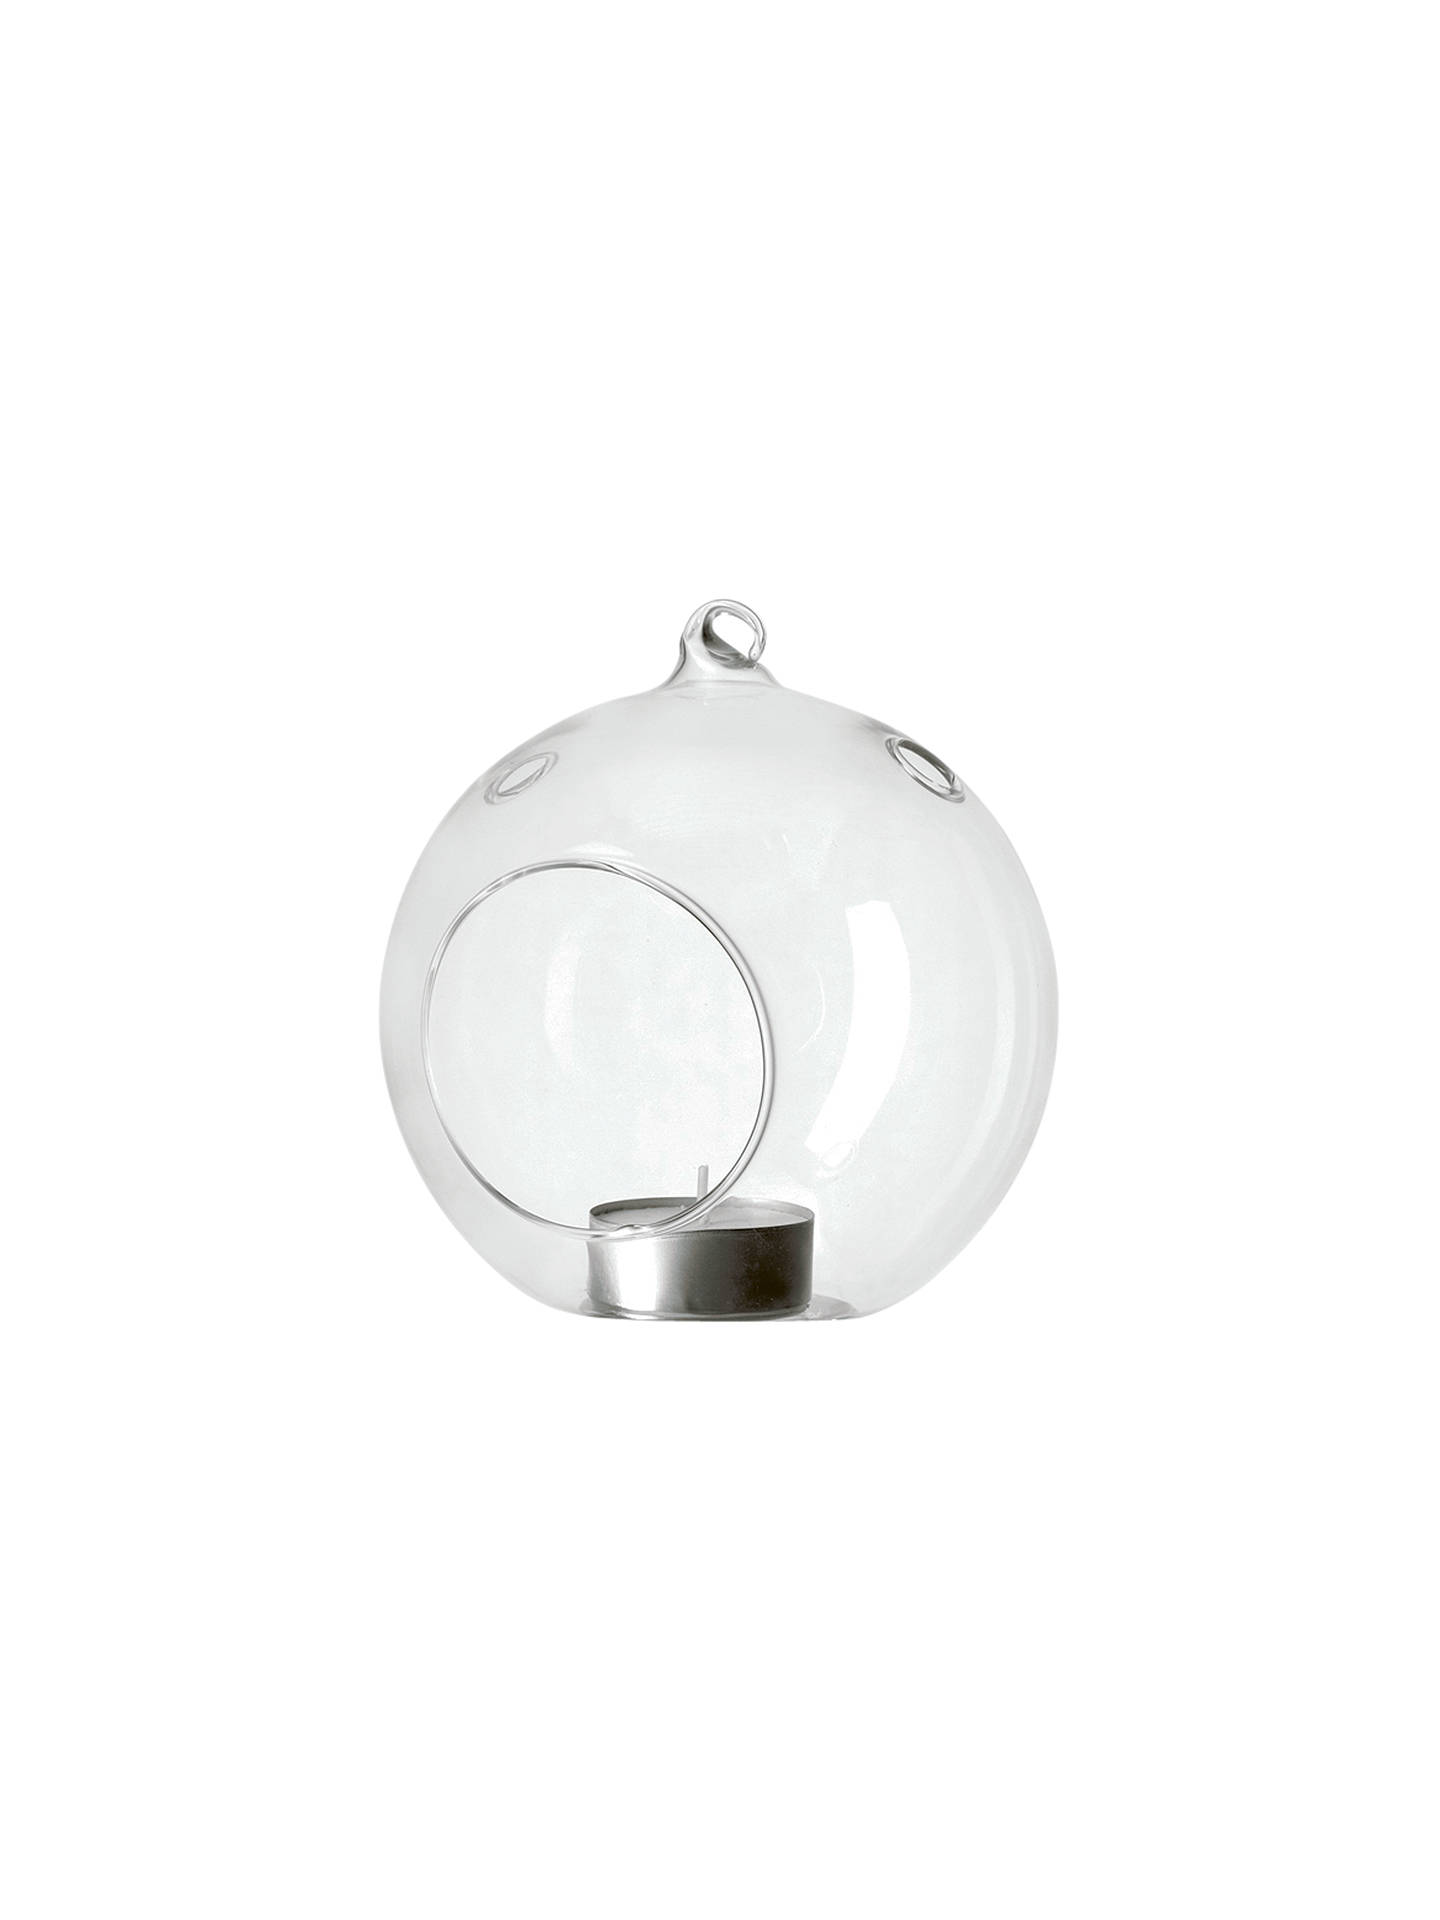 BuyJohn Lewis Hanging Glass Tealight Holder, Small Online at johnlewis.com